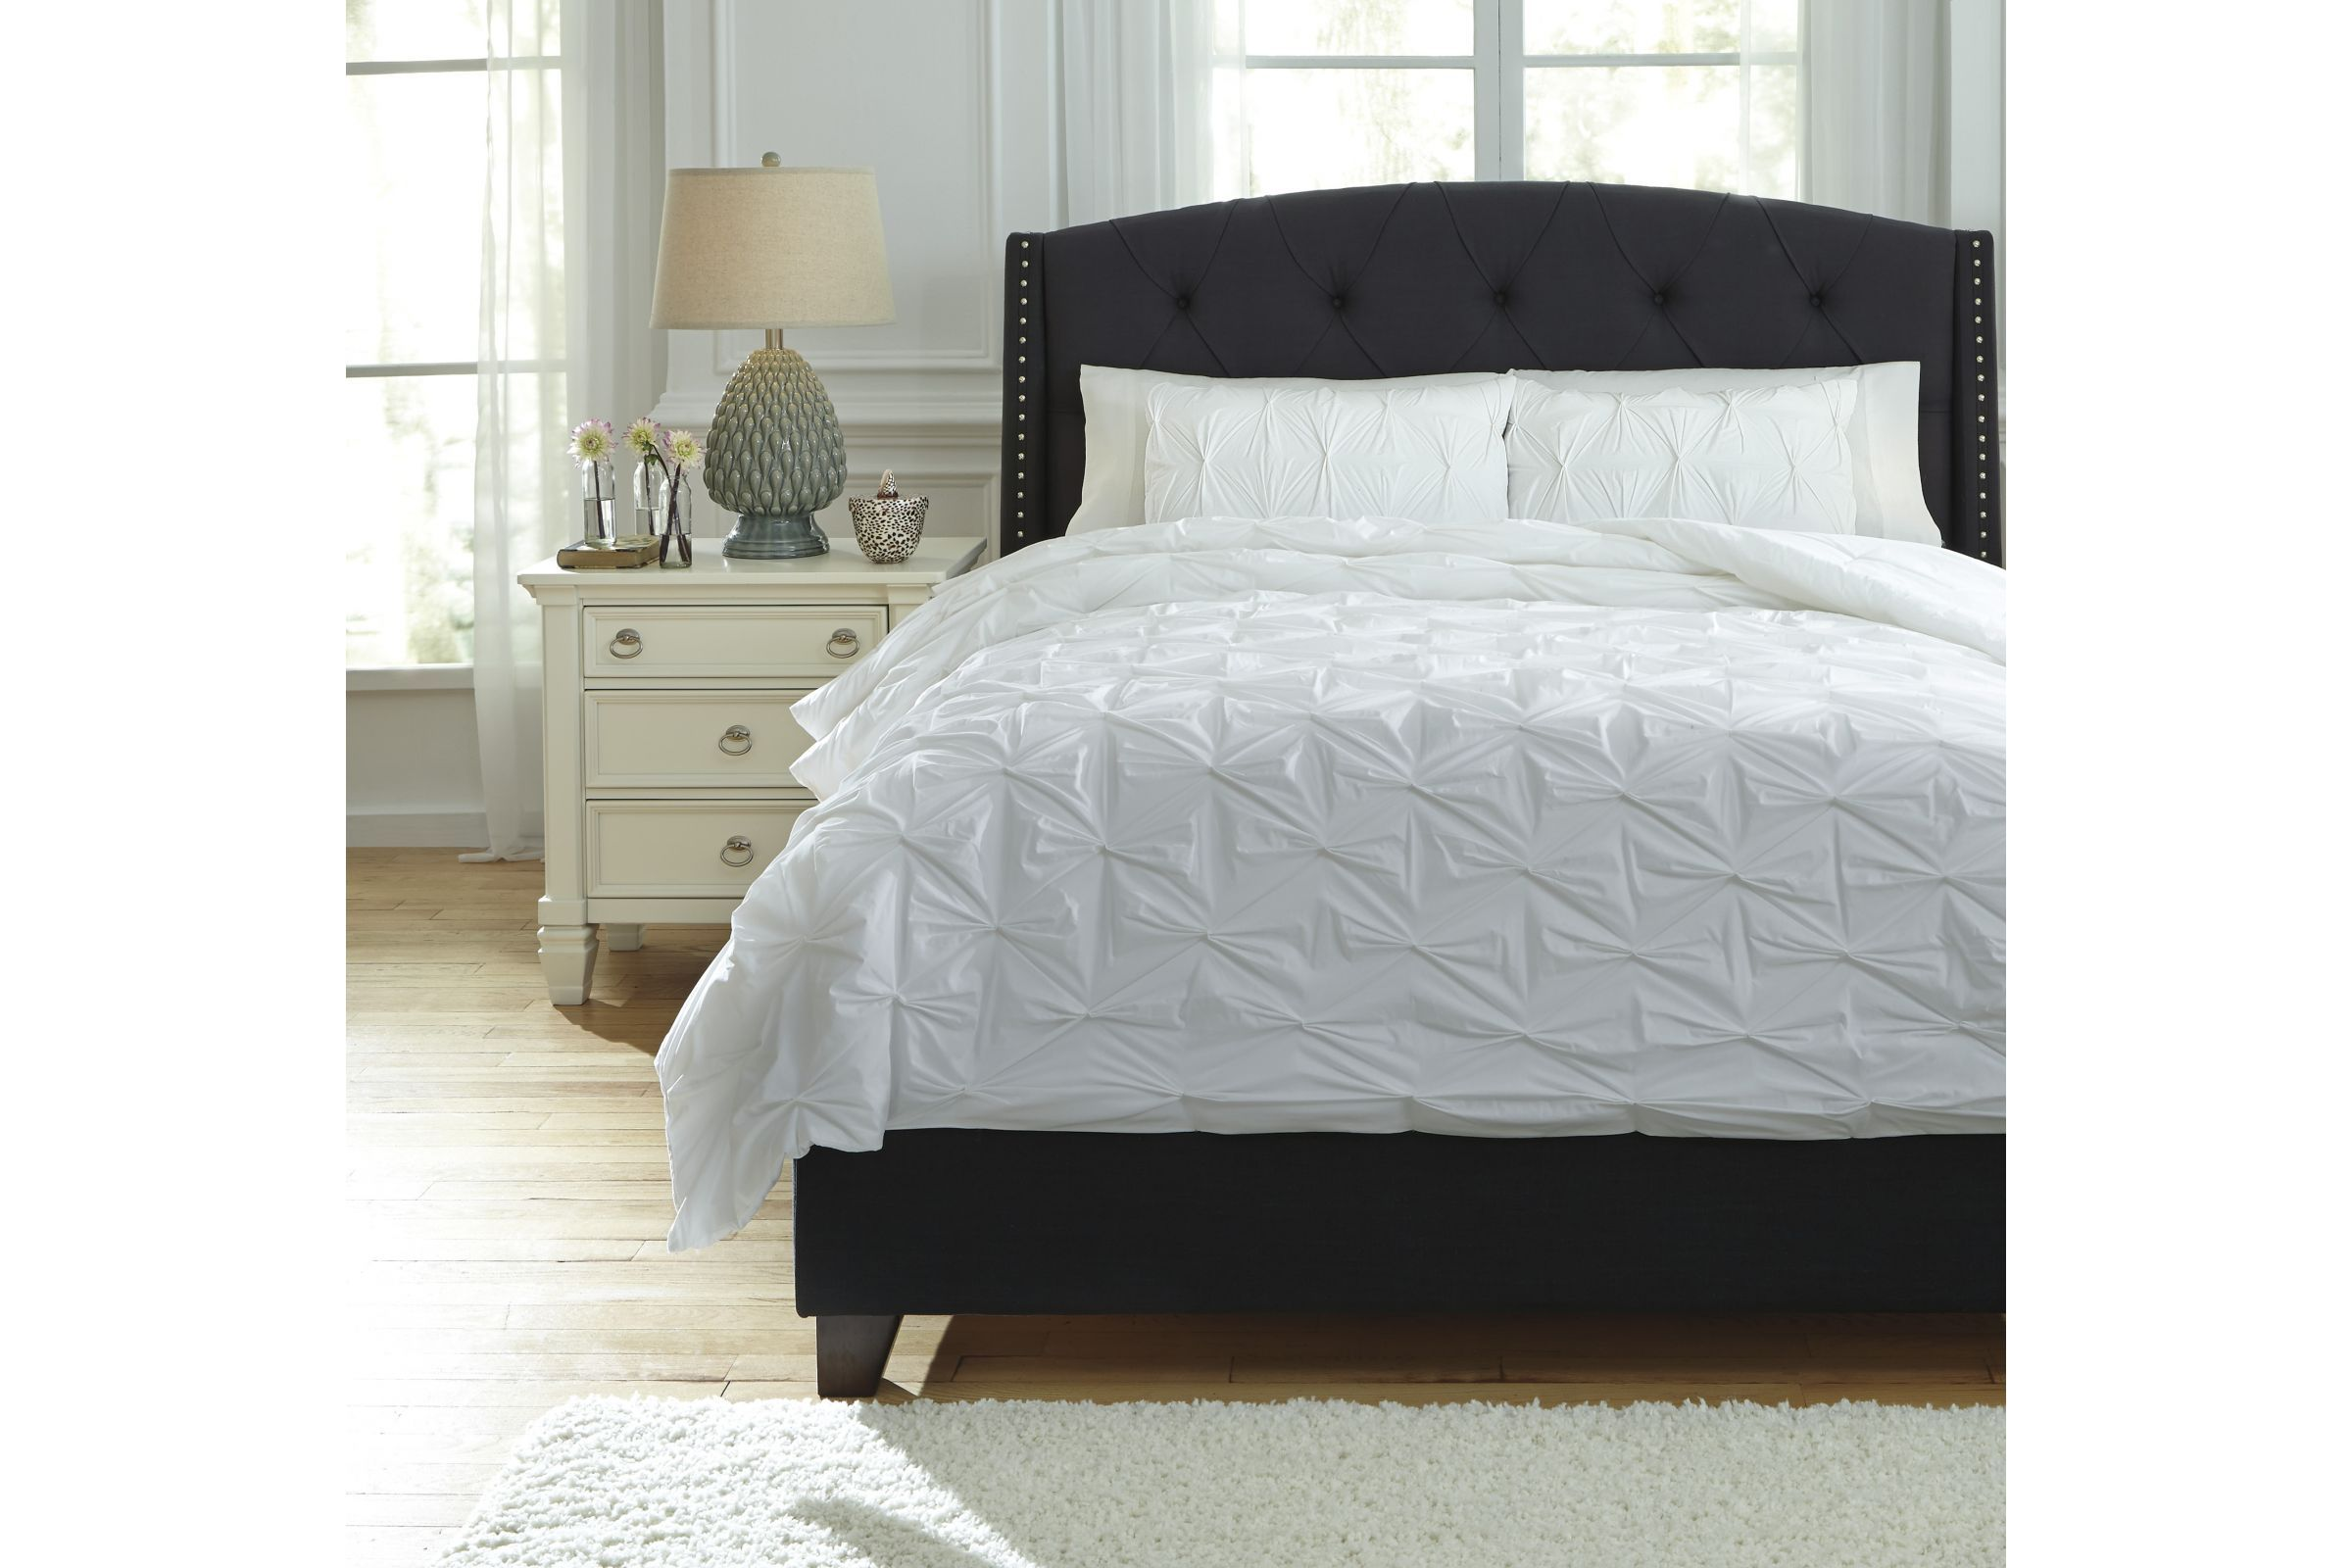 Rimy Queen Comforter Set In White By Ashley In 2020 Comforter